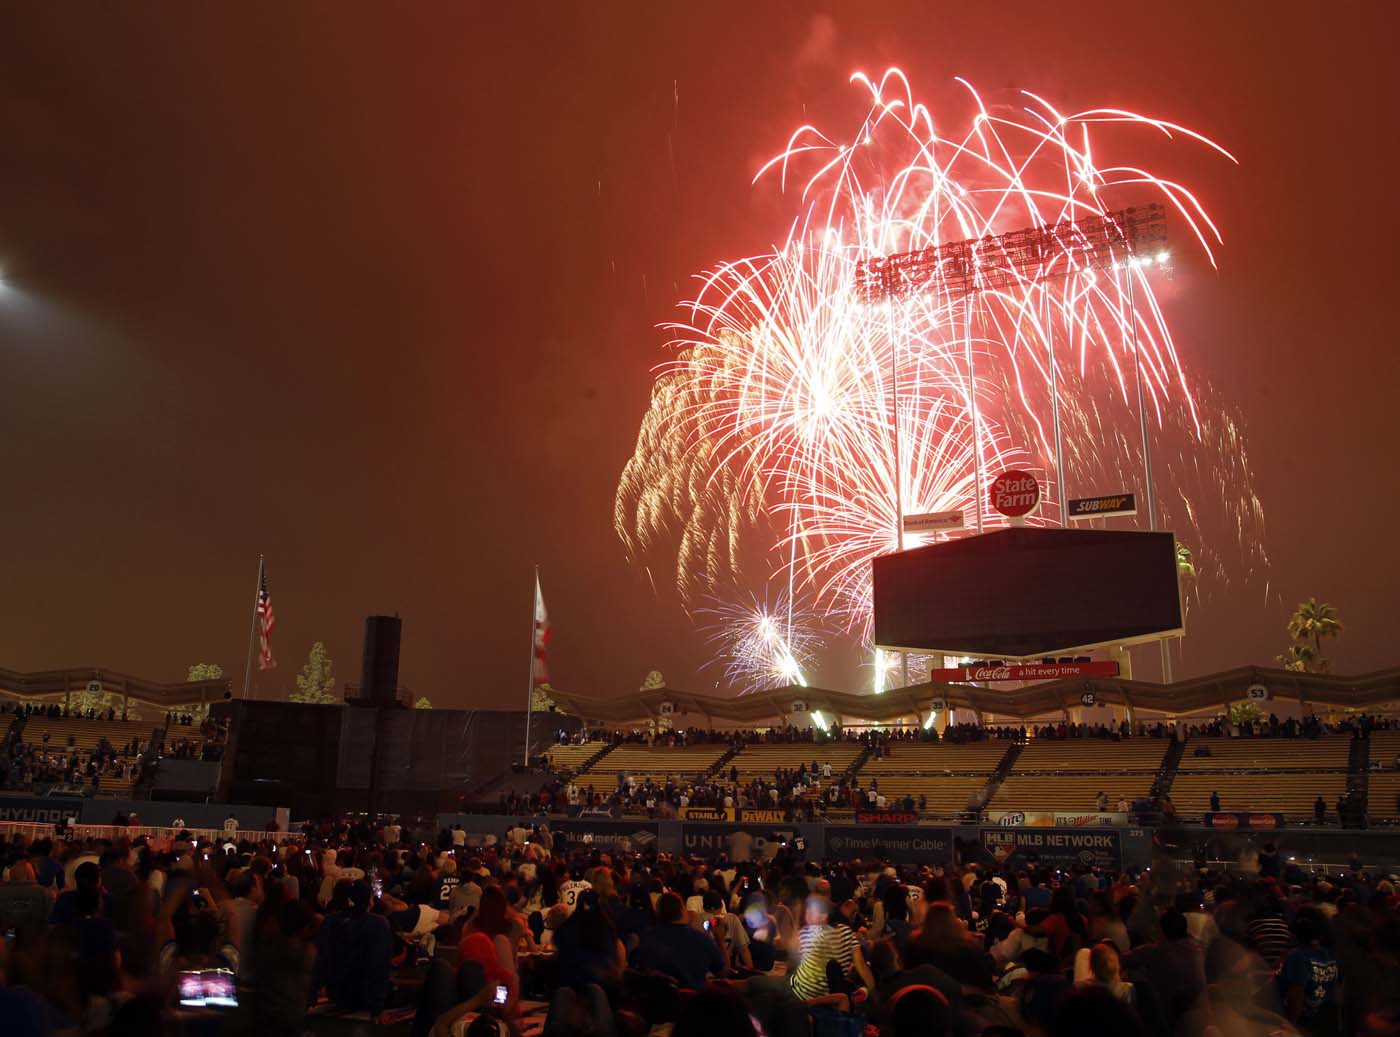 LOS ANGELES, CA - JULY 04: The Fourth of July Fireworks show behind the scoreboard at Dodger Stadium. (Alex Gallardo/Reuters)